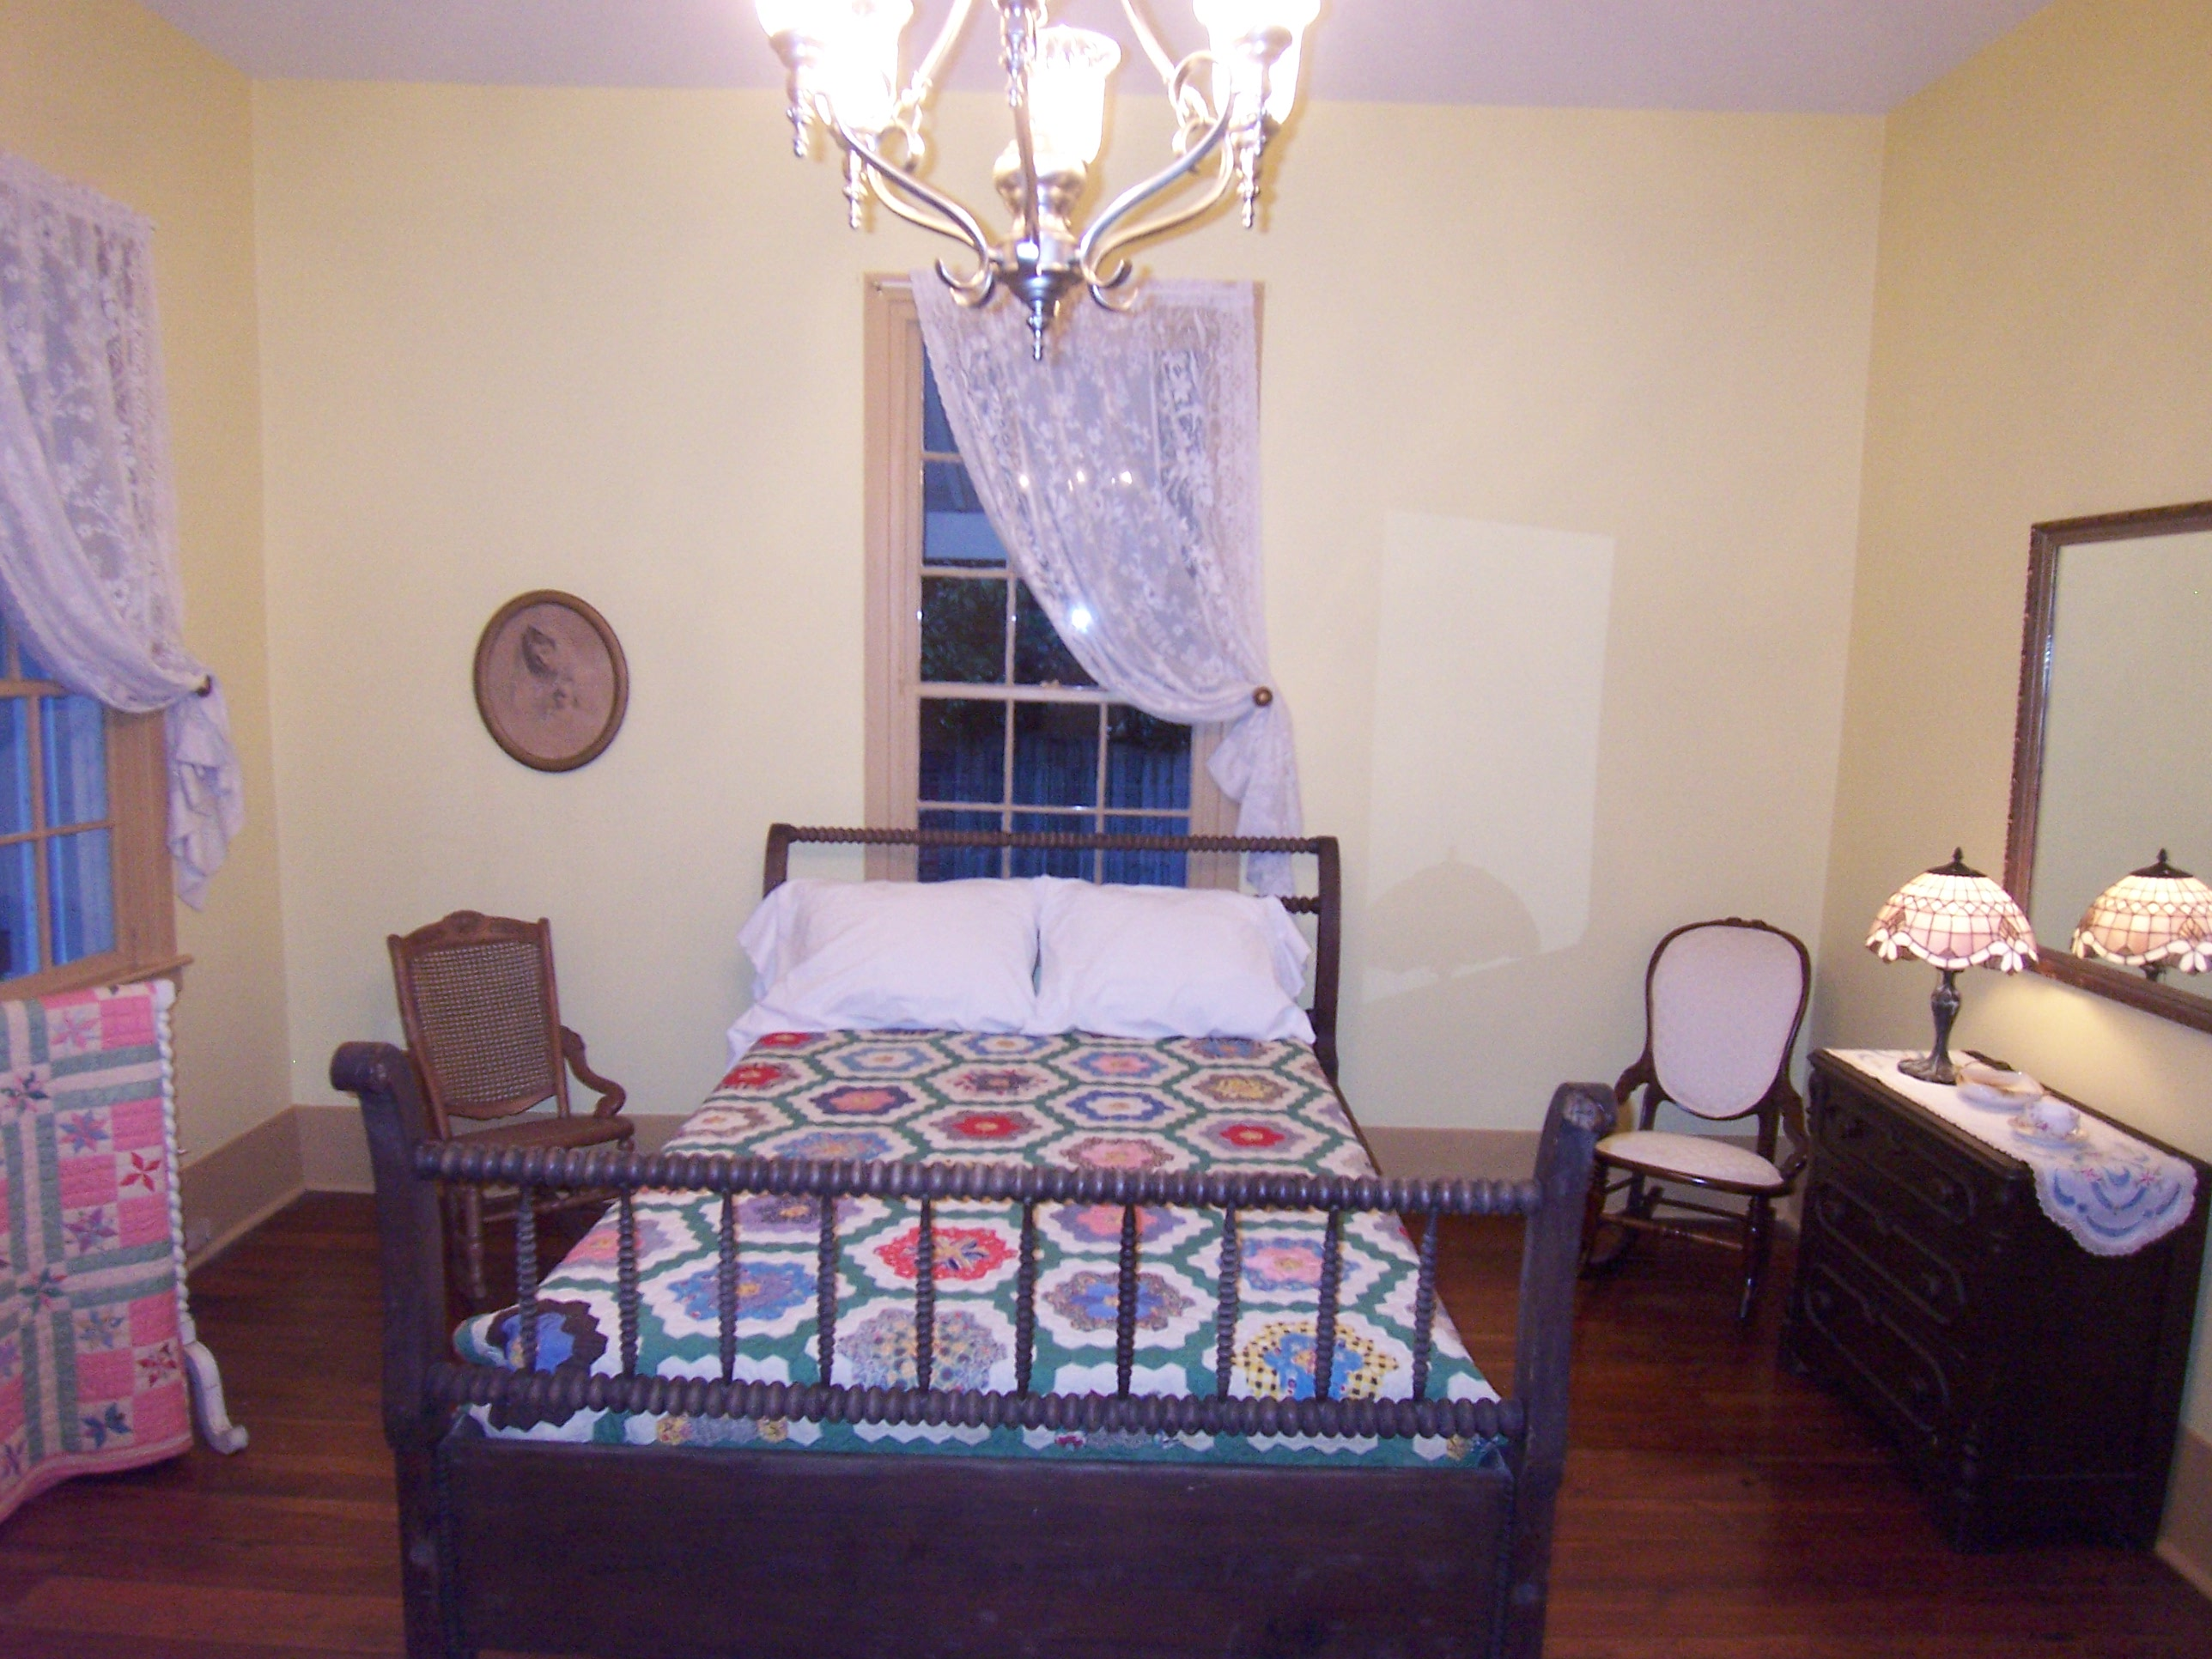 Vinings-Historic-Pace-House-Bedroom-Renovation-Paces-Construction